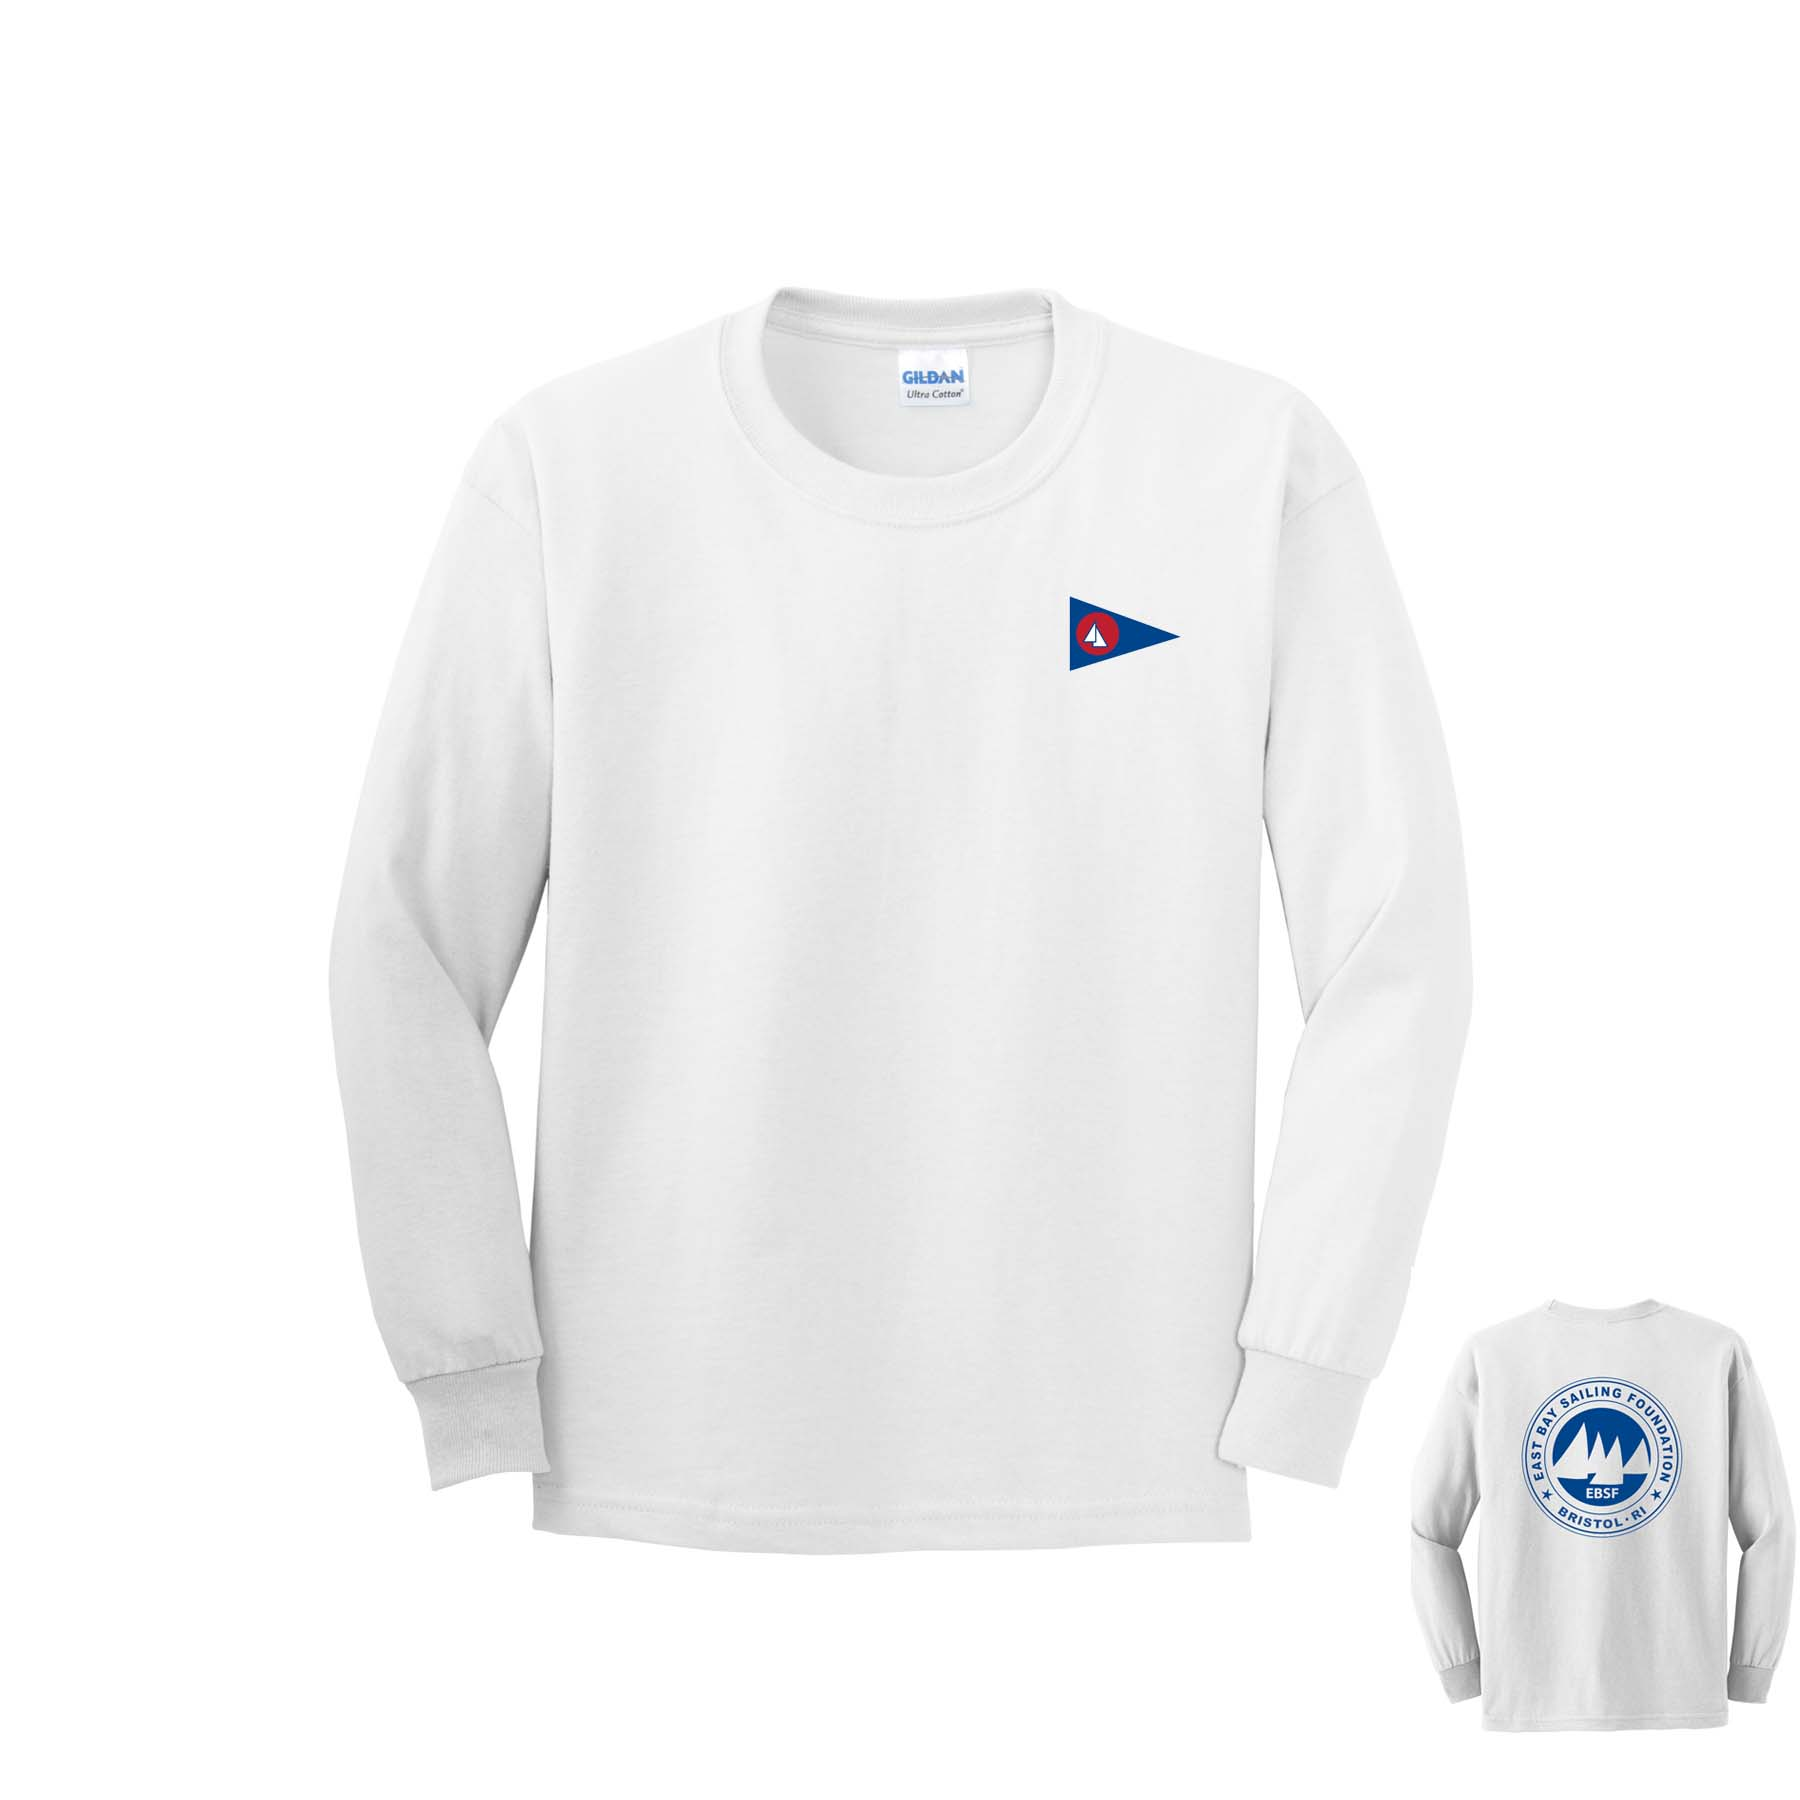 East Bay Sailing Foundation - Youth Long Sleeve Cotton Tee